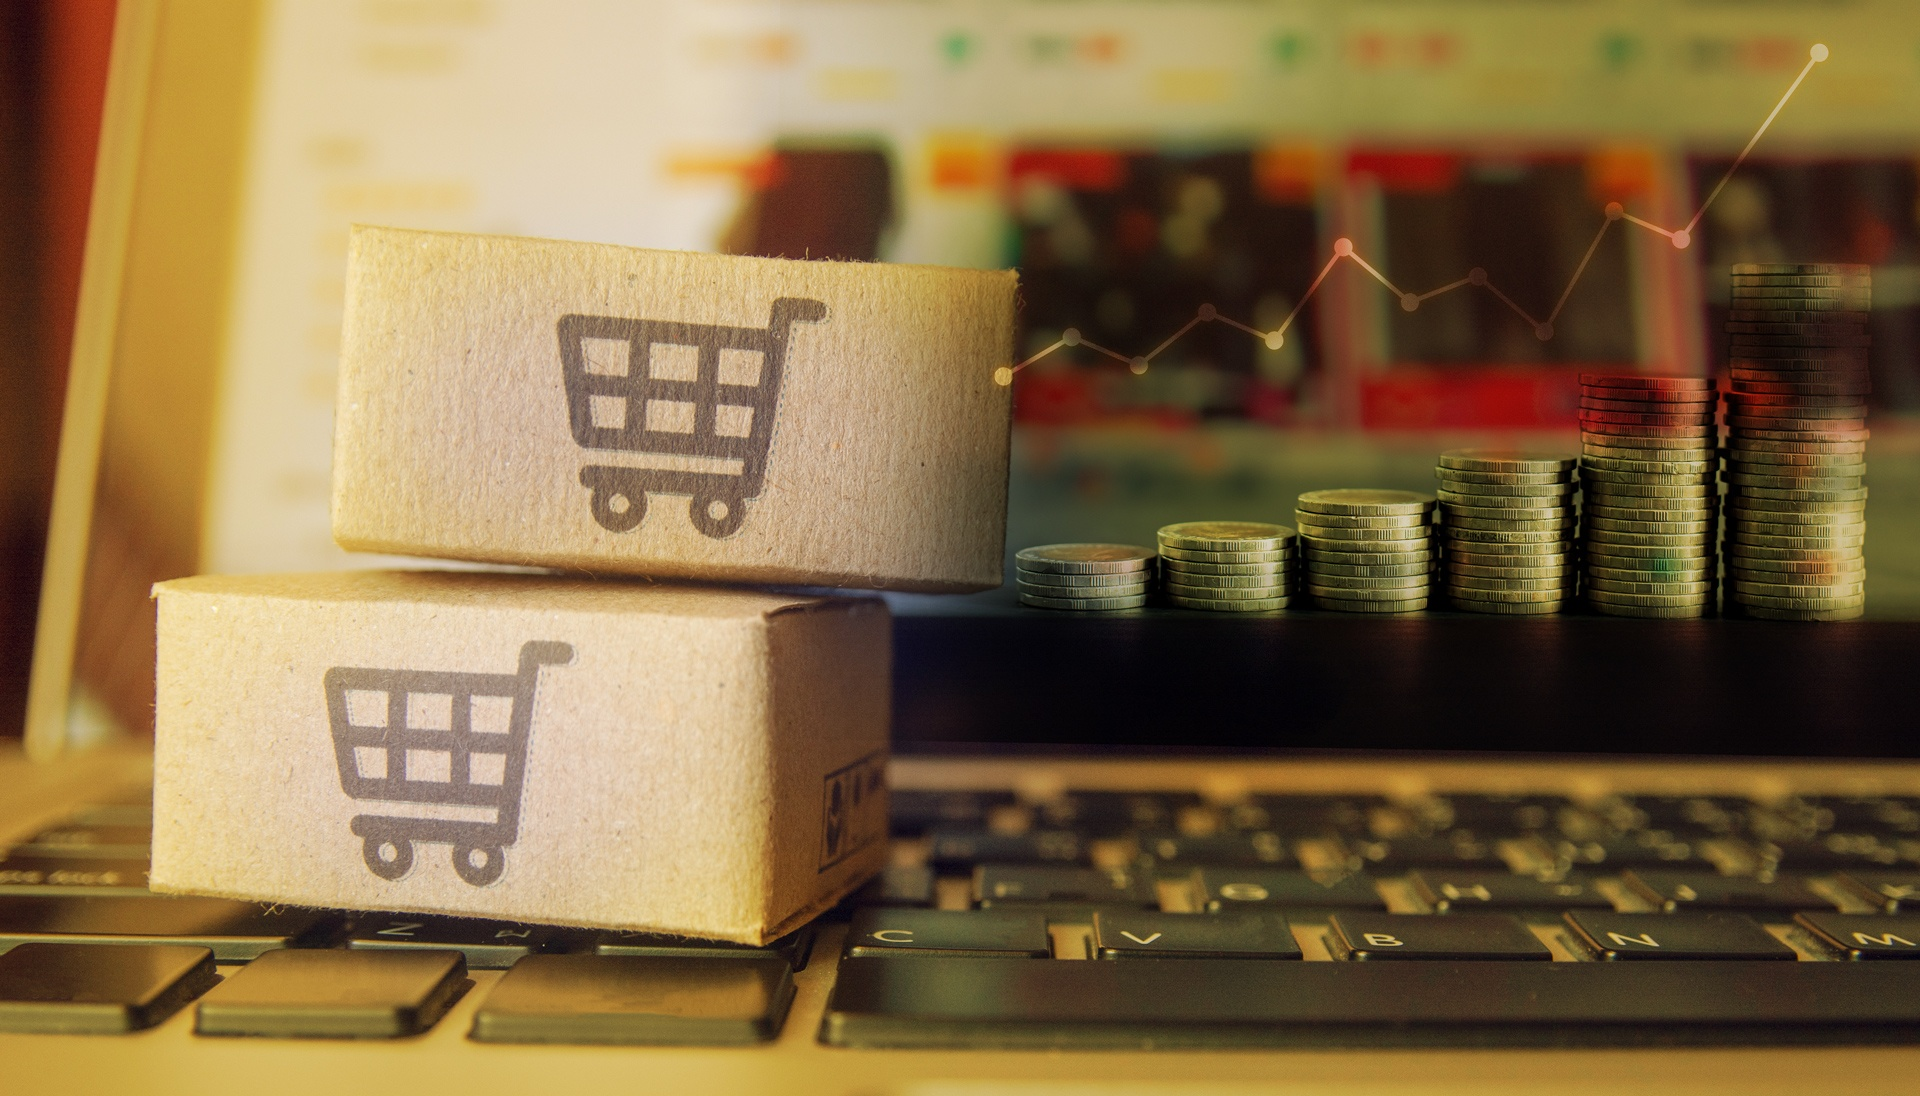 ecommerce business for sale